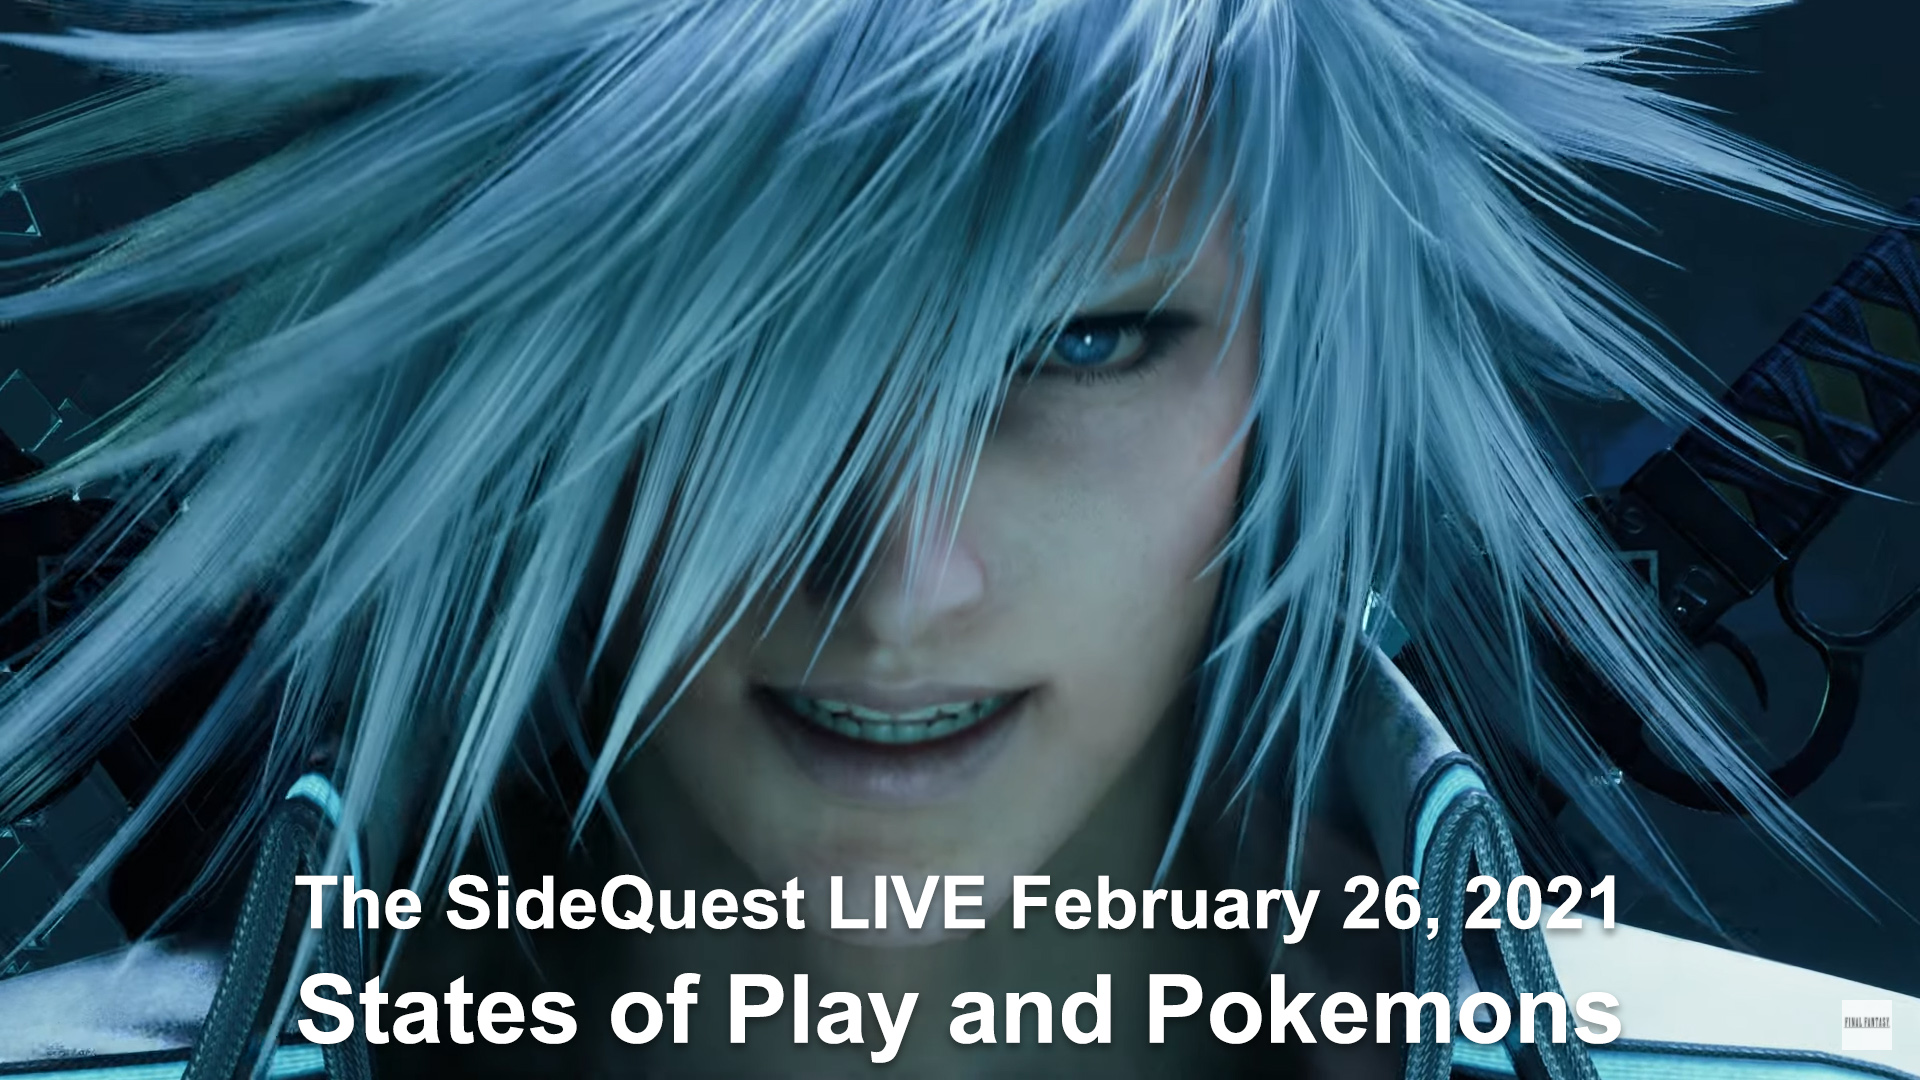 The SideQuest LIVE February 26, 2021: States of Play and Pokemons